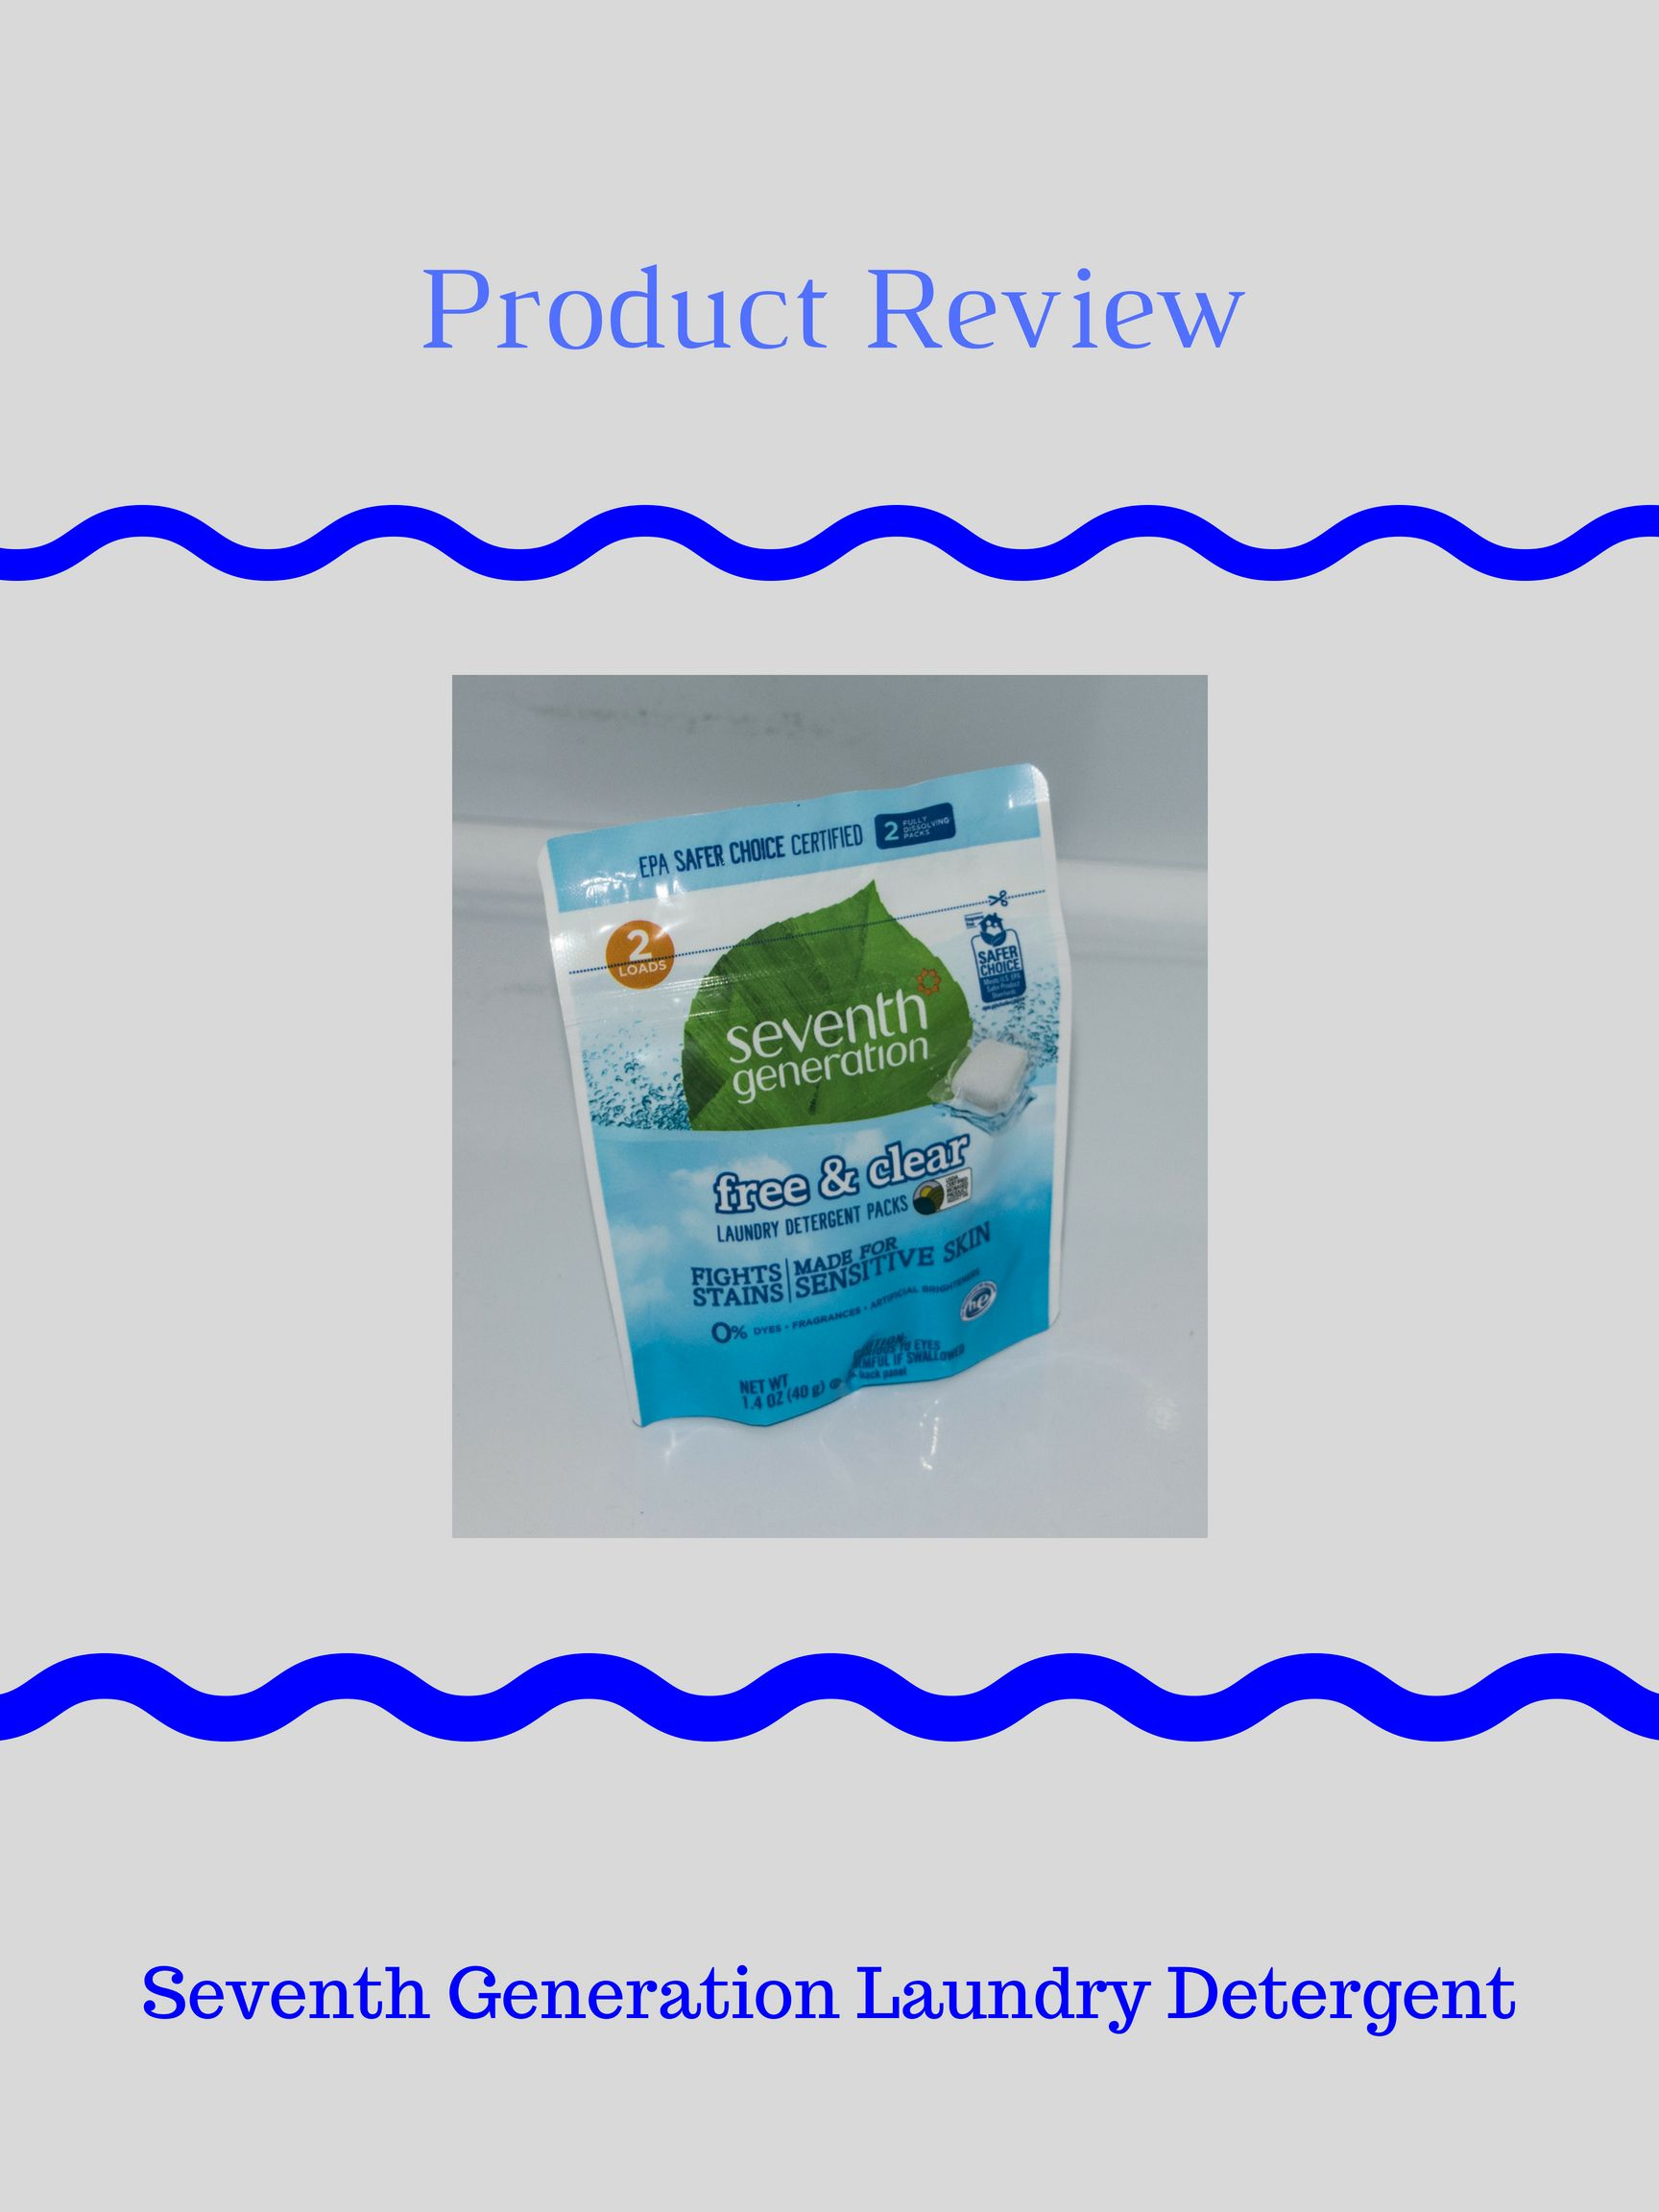 Do You Have Sensitive Skin Check Out This Free And Clear Laundry Detergent Seventh Generation Laundry Detergent Laundry Detergent Detergent